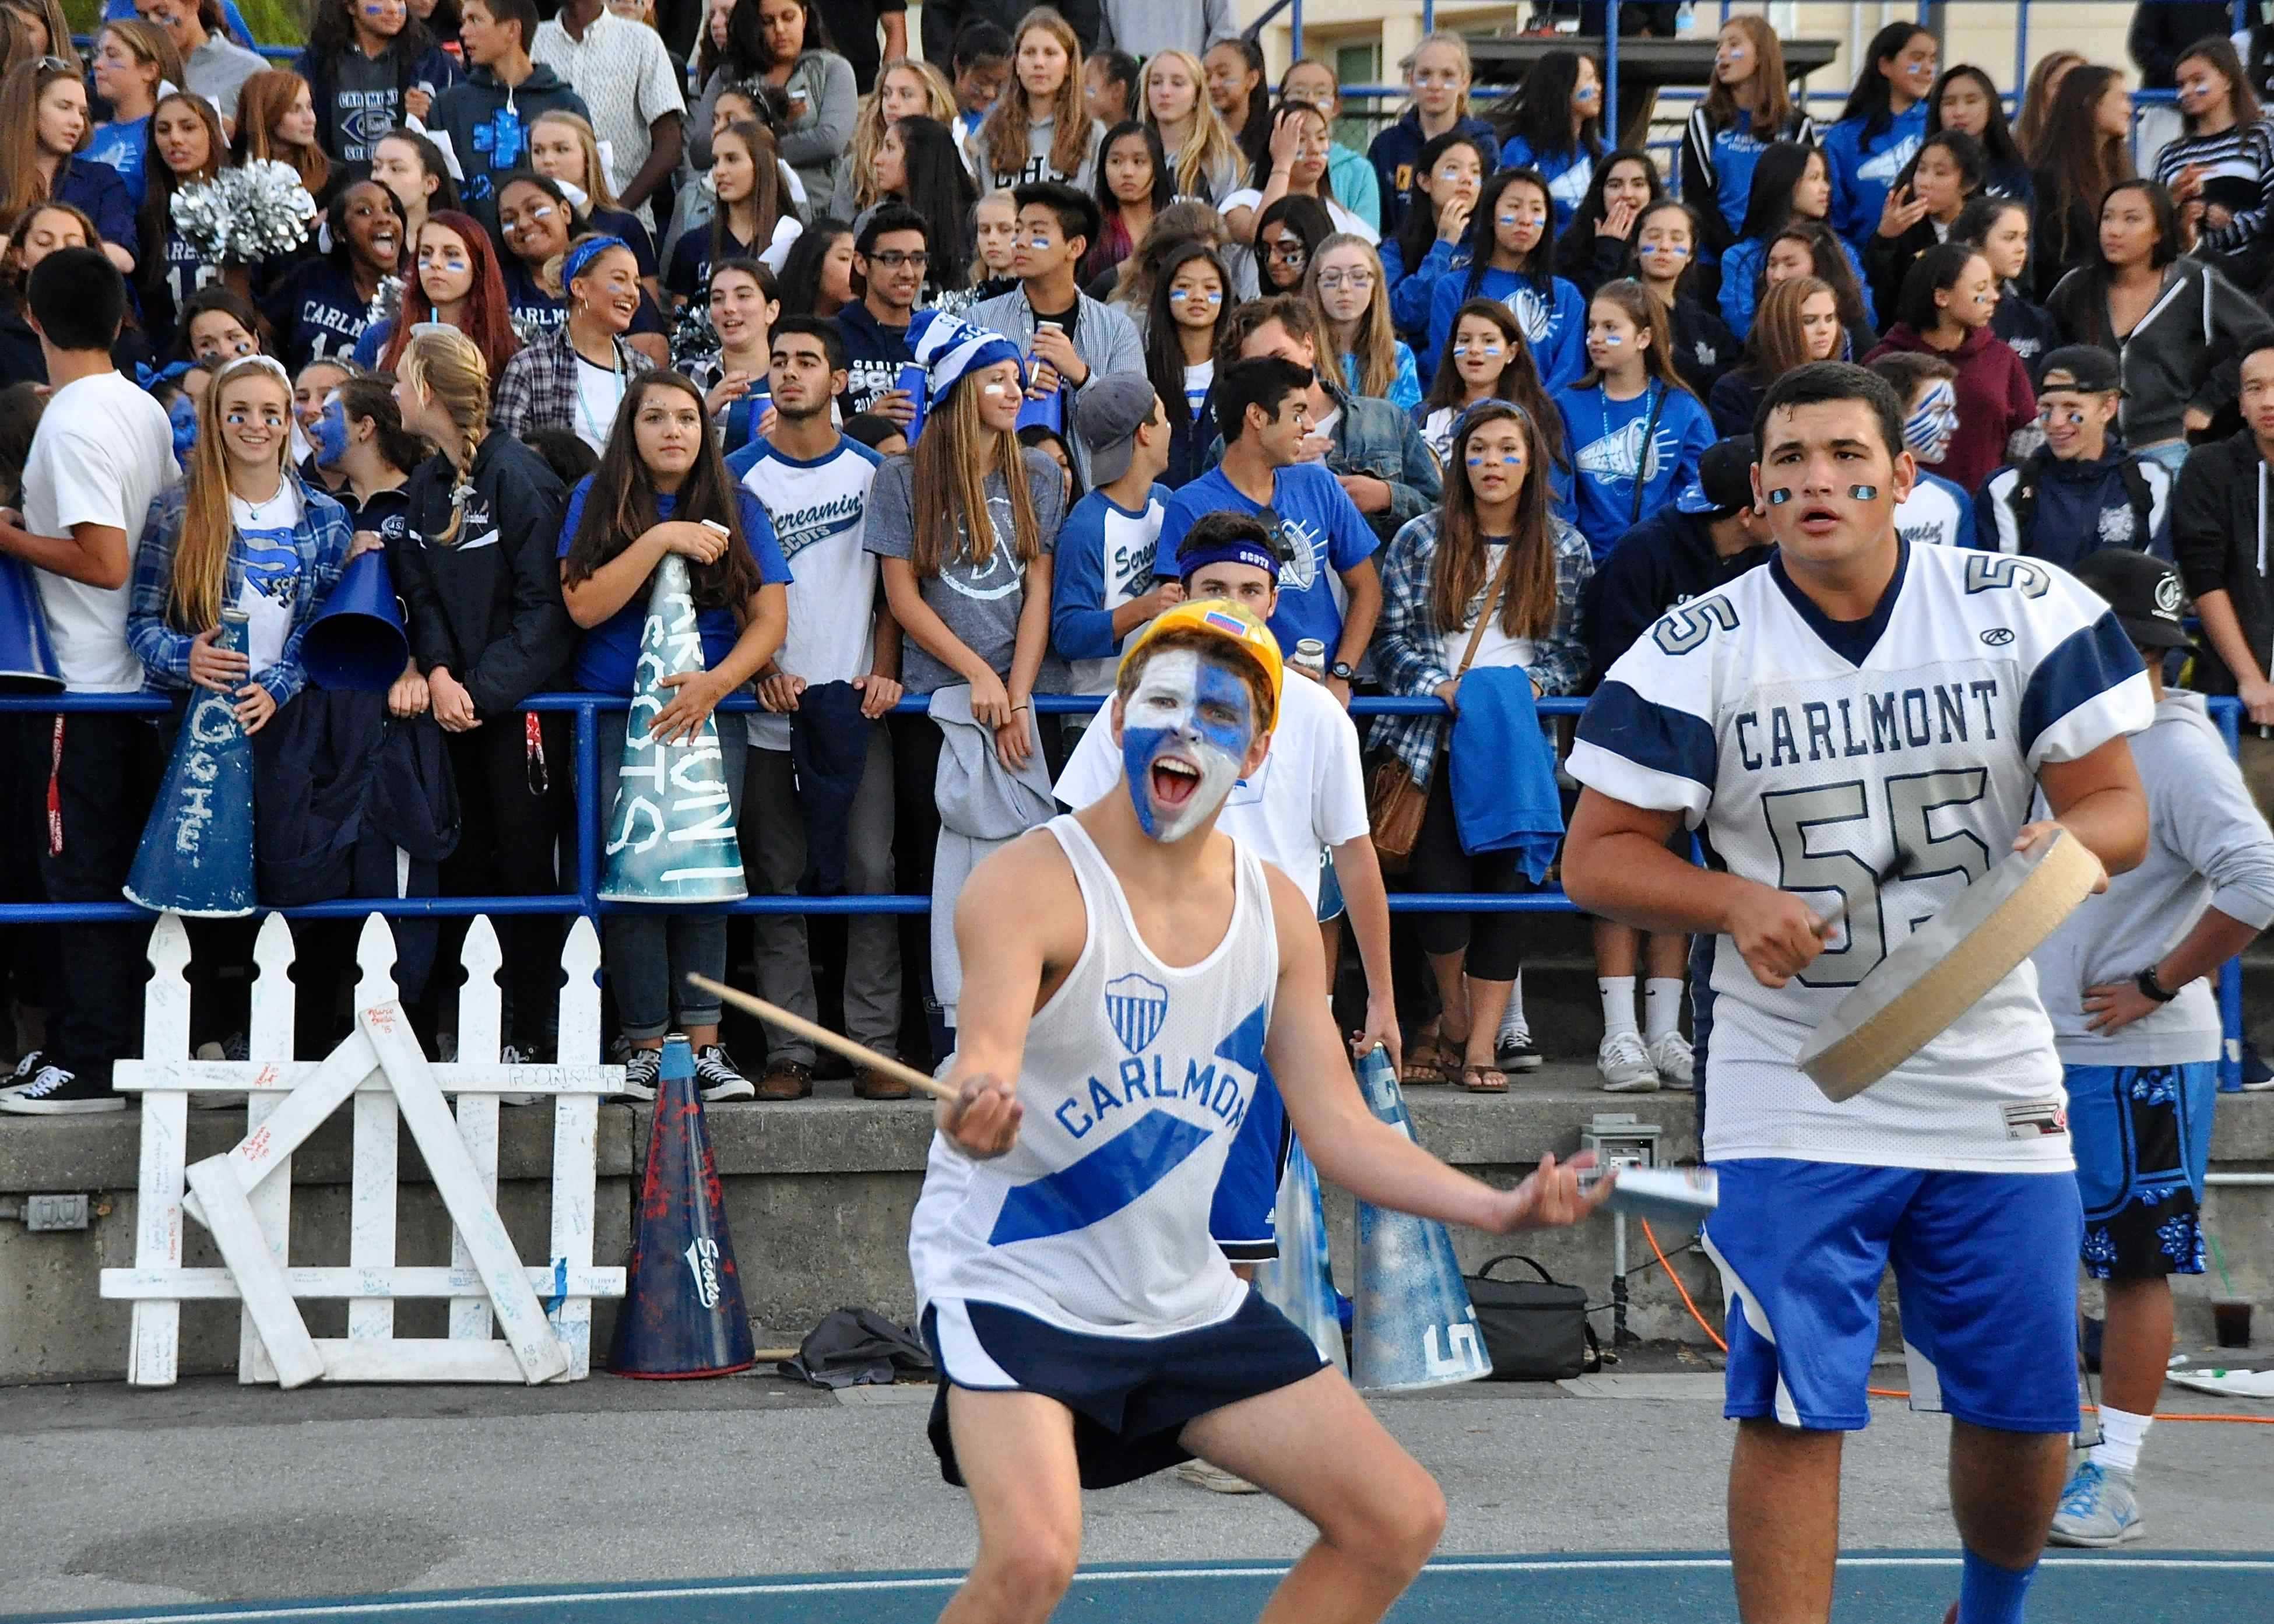 ASB Vice President Lucas Kelly and Senior Vice President Sam Levy lead the crowd to cheer for their team.